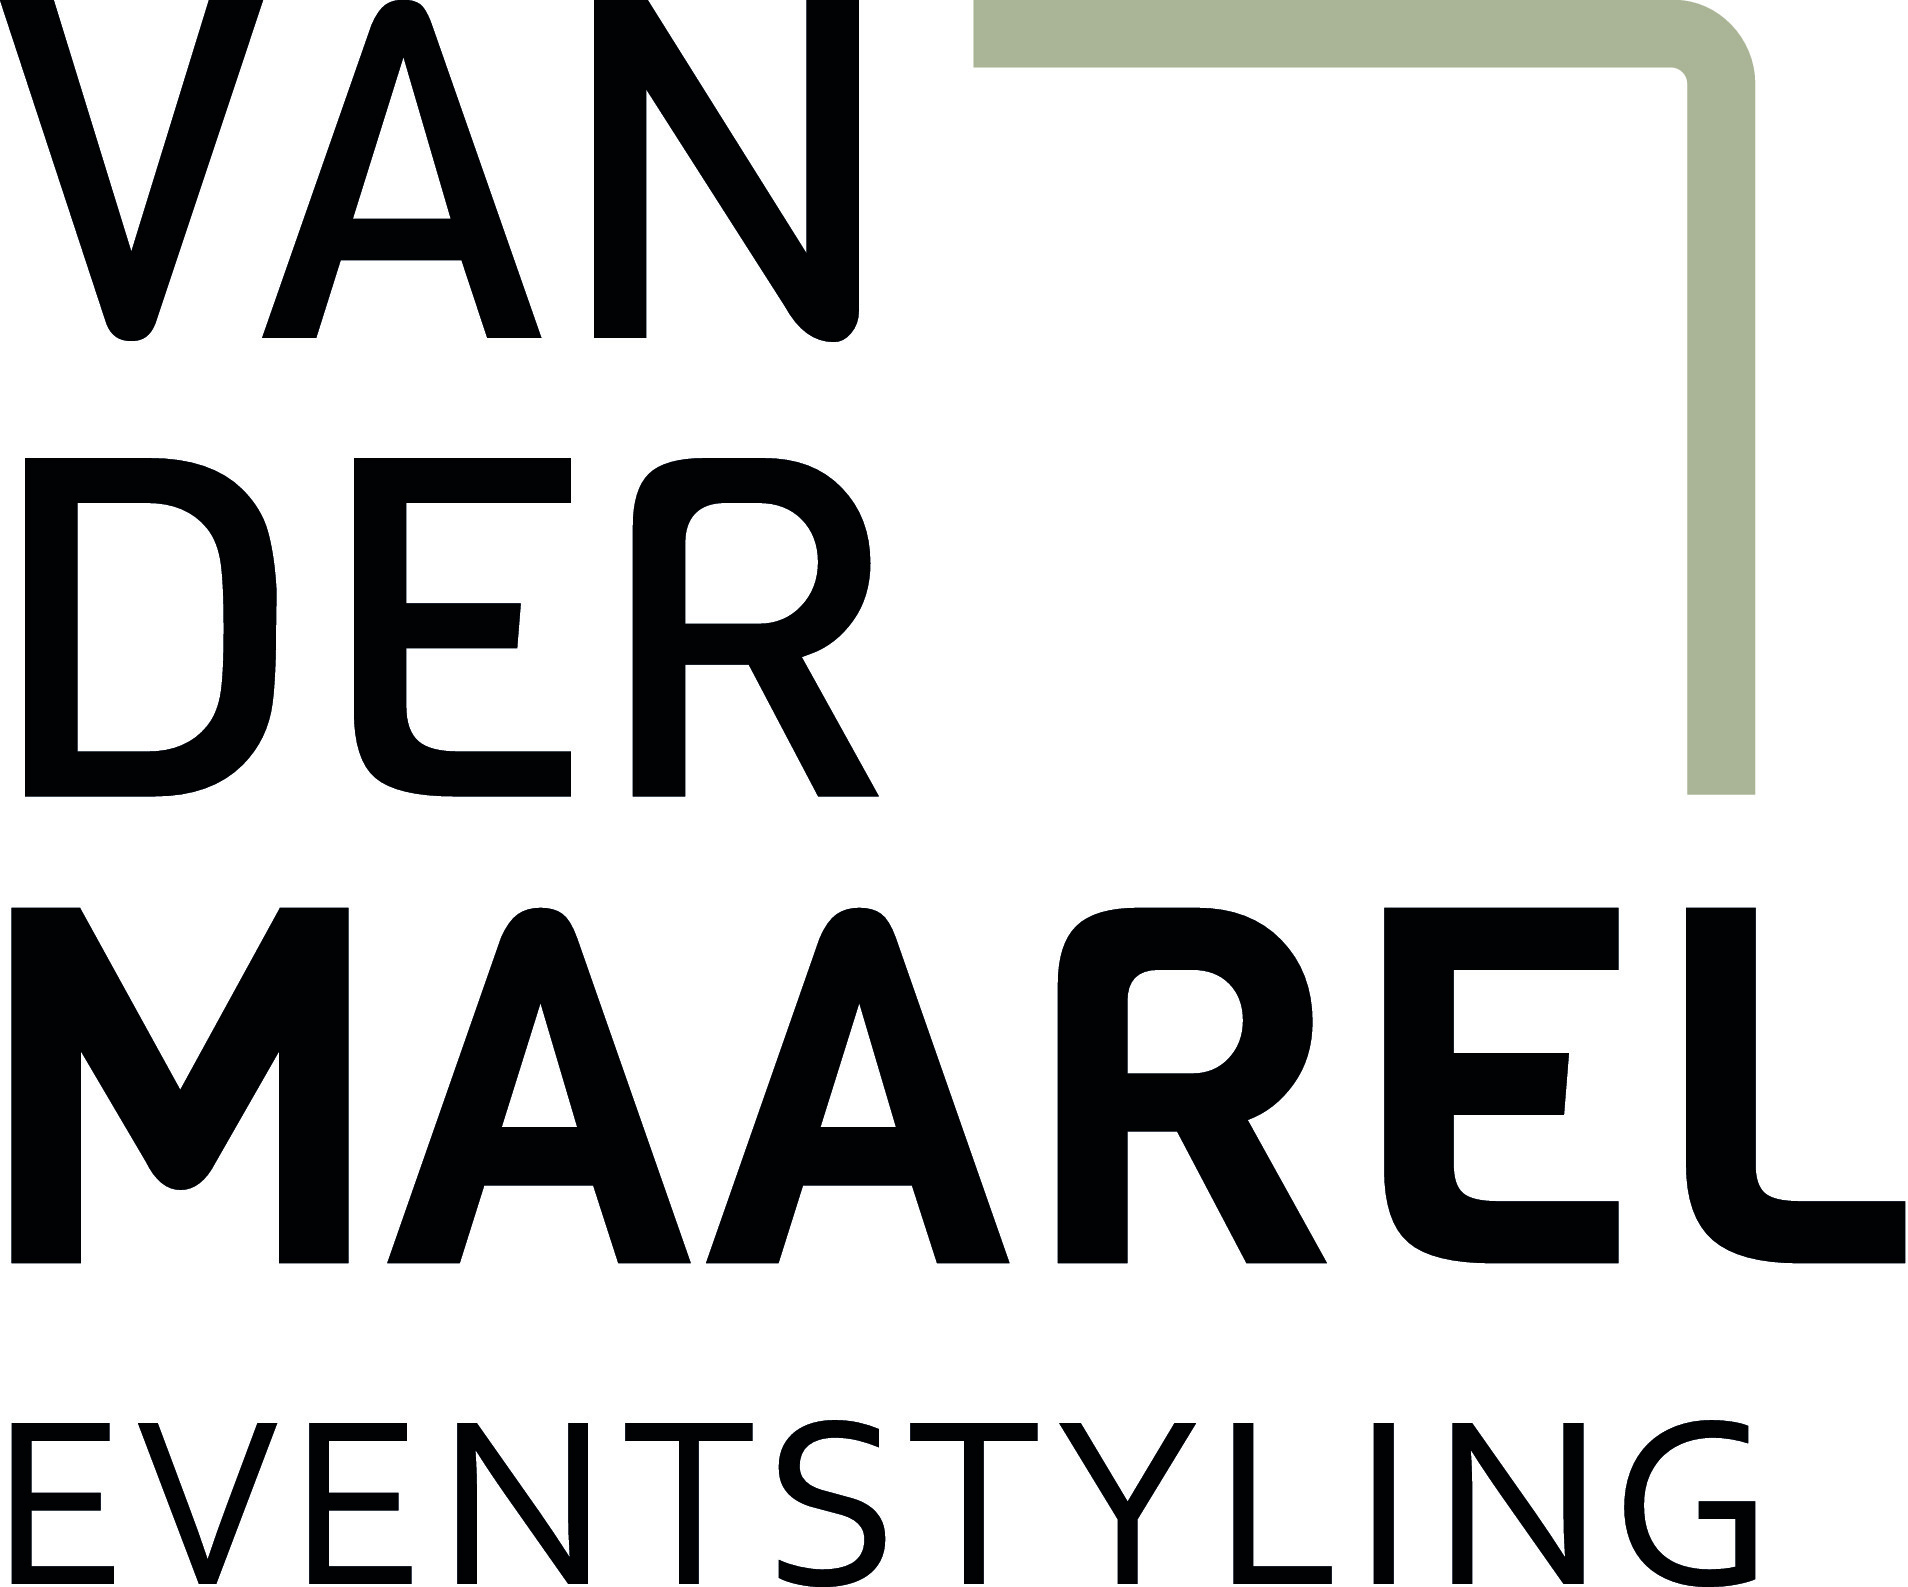 Van der Maarel Eventstyling